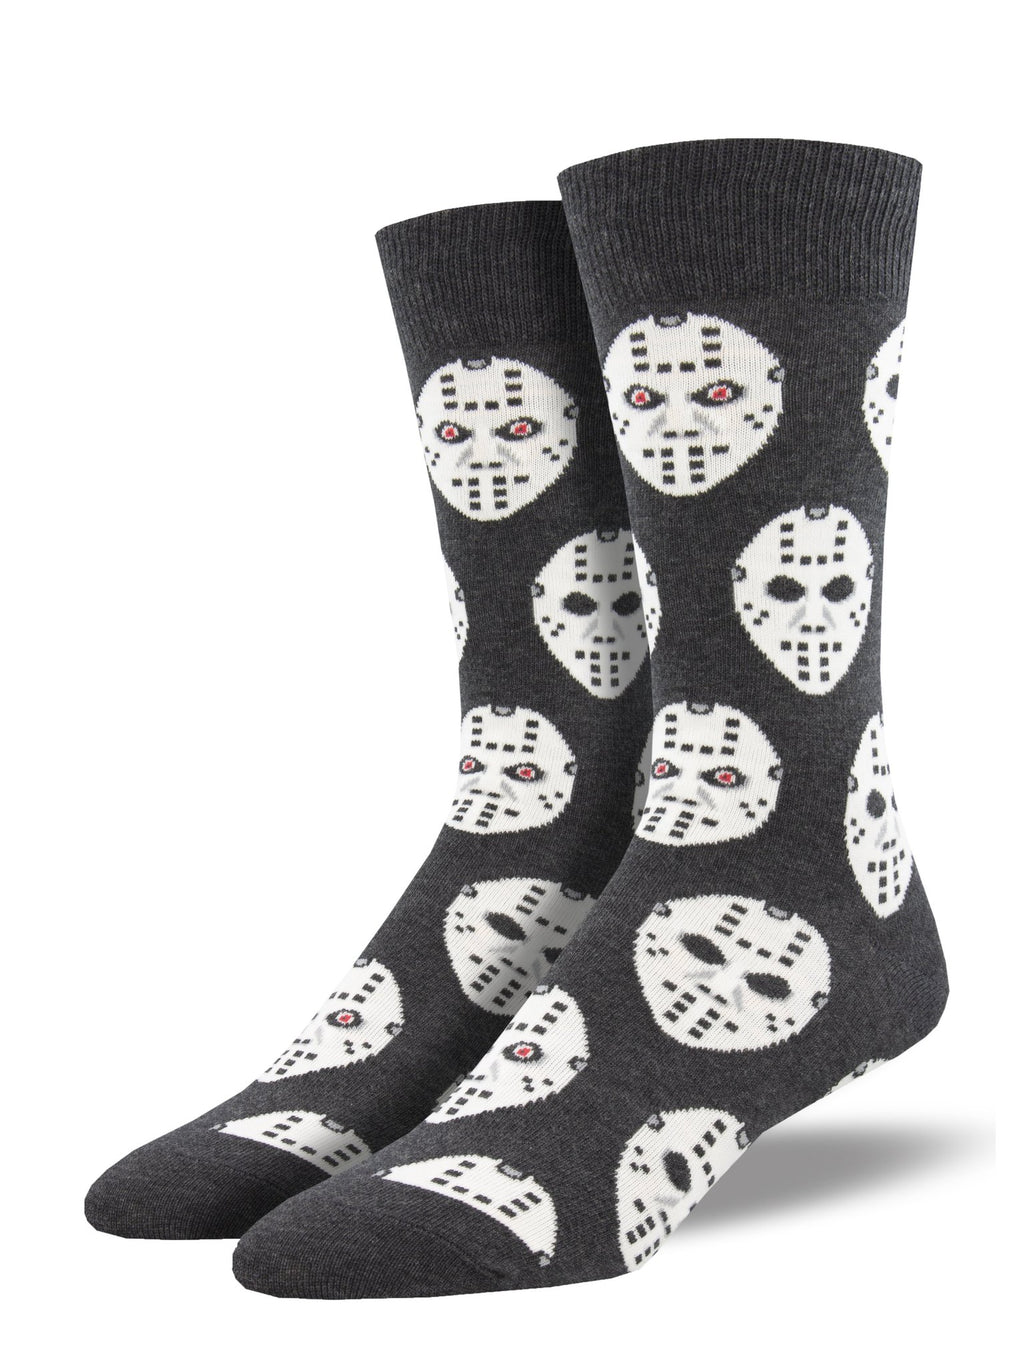 Face Off Charcoal Men's Socks